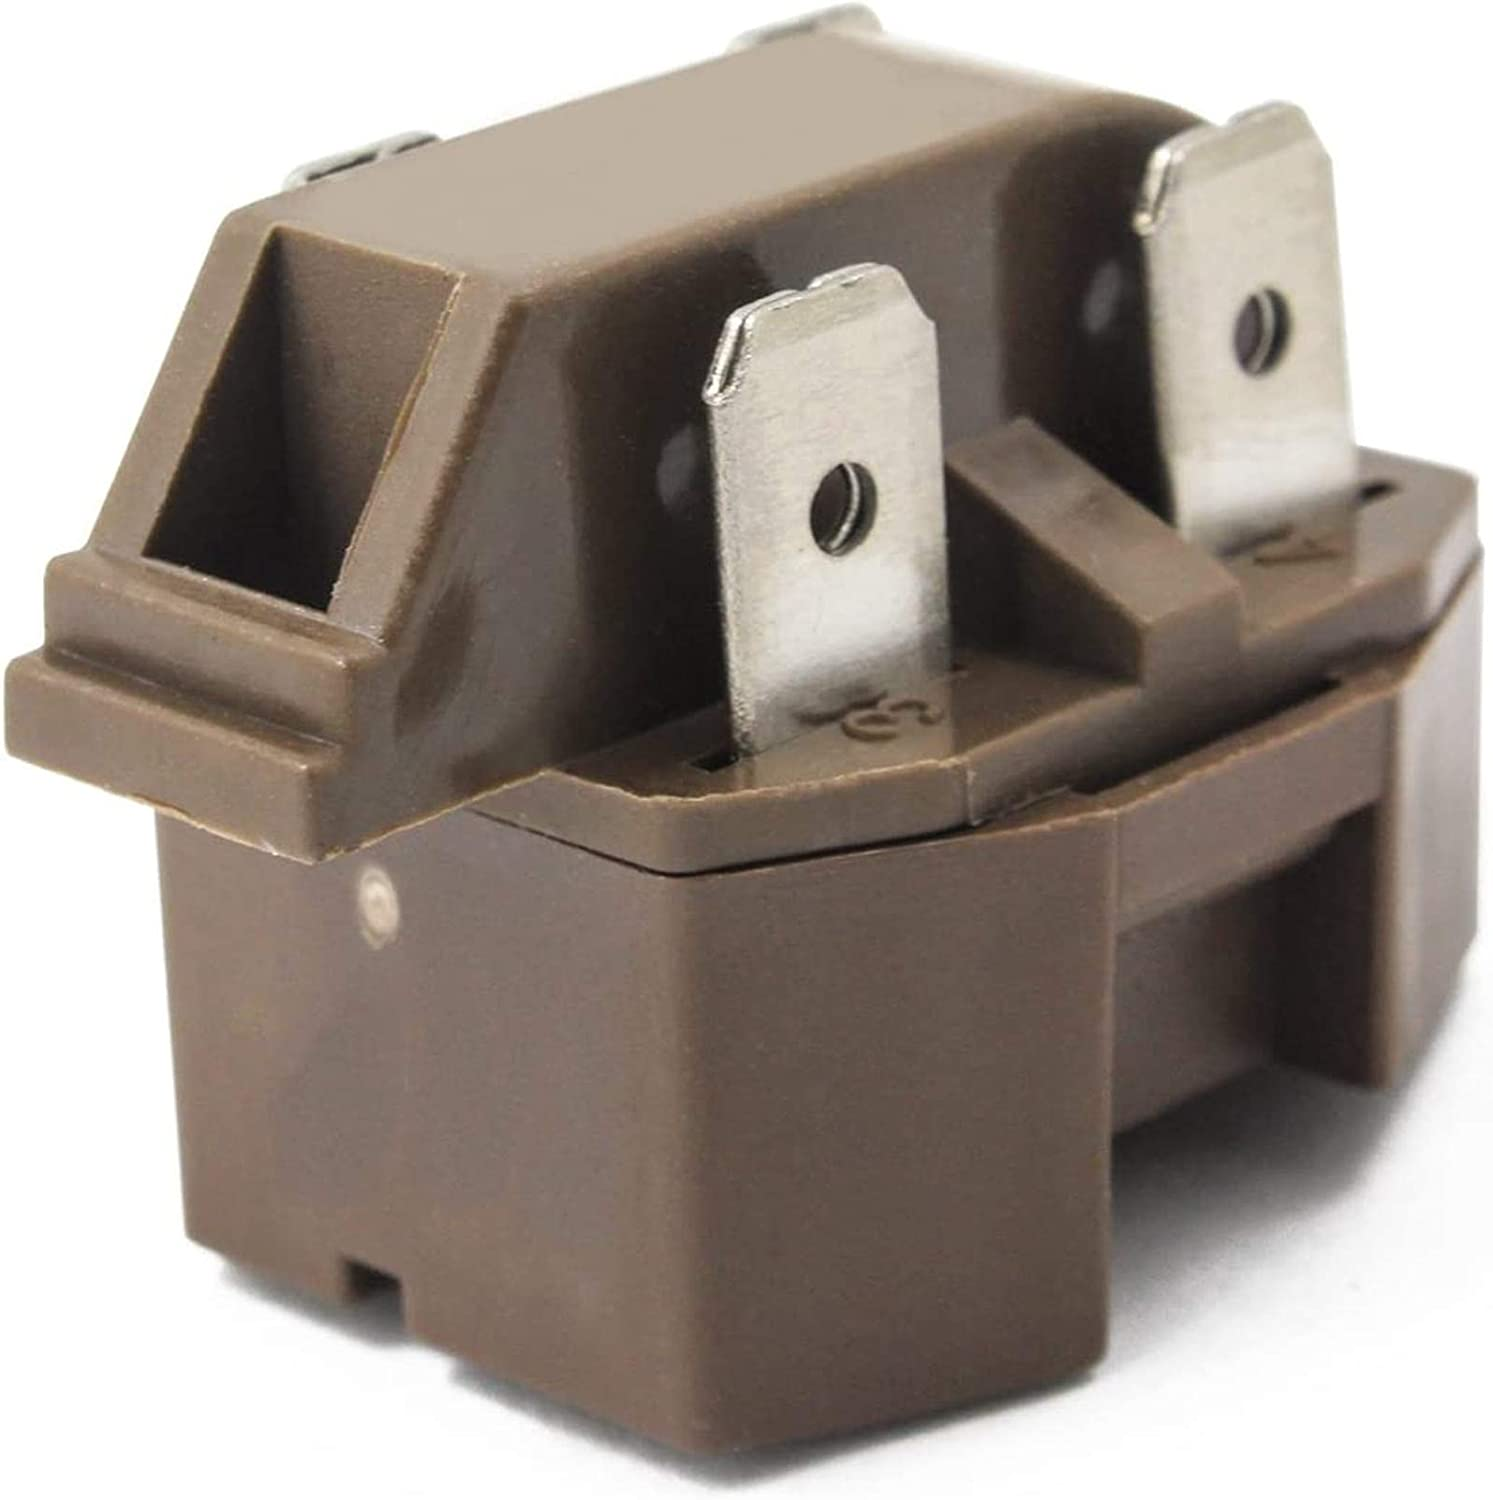 IC-4 4Pin Freezer Compressor PTC Start Relay Fit for Frigidaire Gibson GE Whirlpool Ropper Kenmore Refrigerators Replaces 32330 WP2262185 WR07X26748 4387913 216594300 WP2262181 WR07X10055 AP2136233